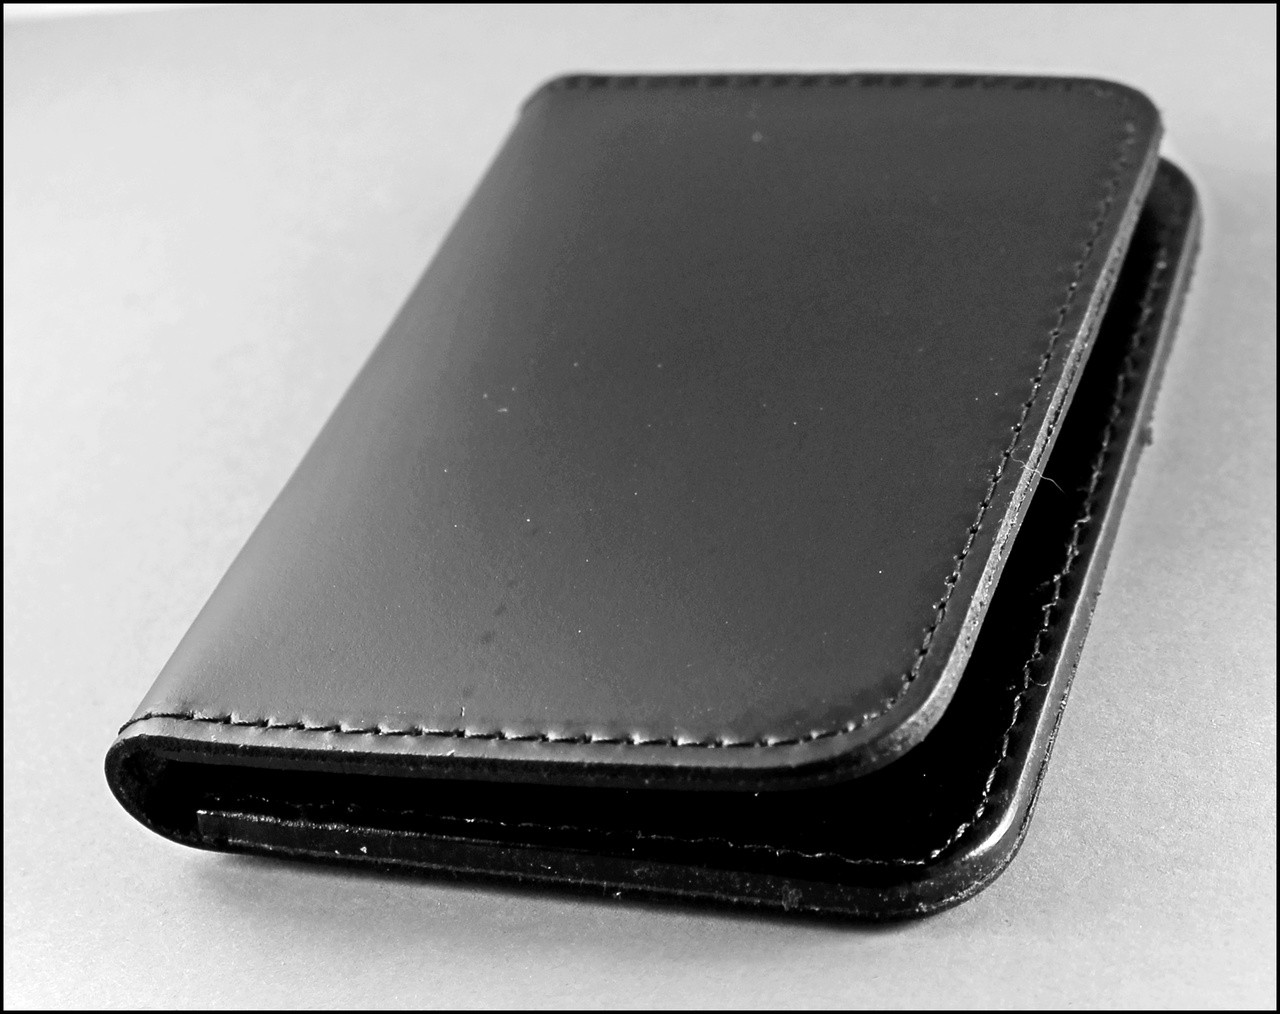 Immigration and Customs Enforcement Intelligence Officer Family Member ID Wallet closed view